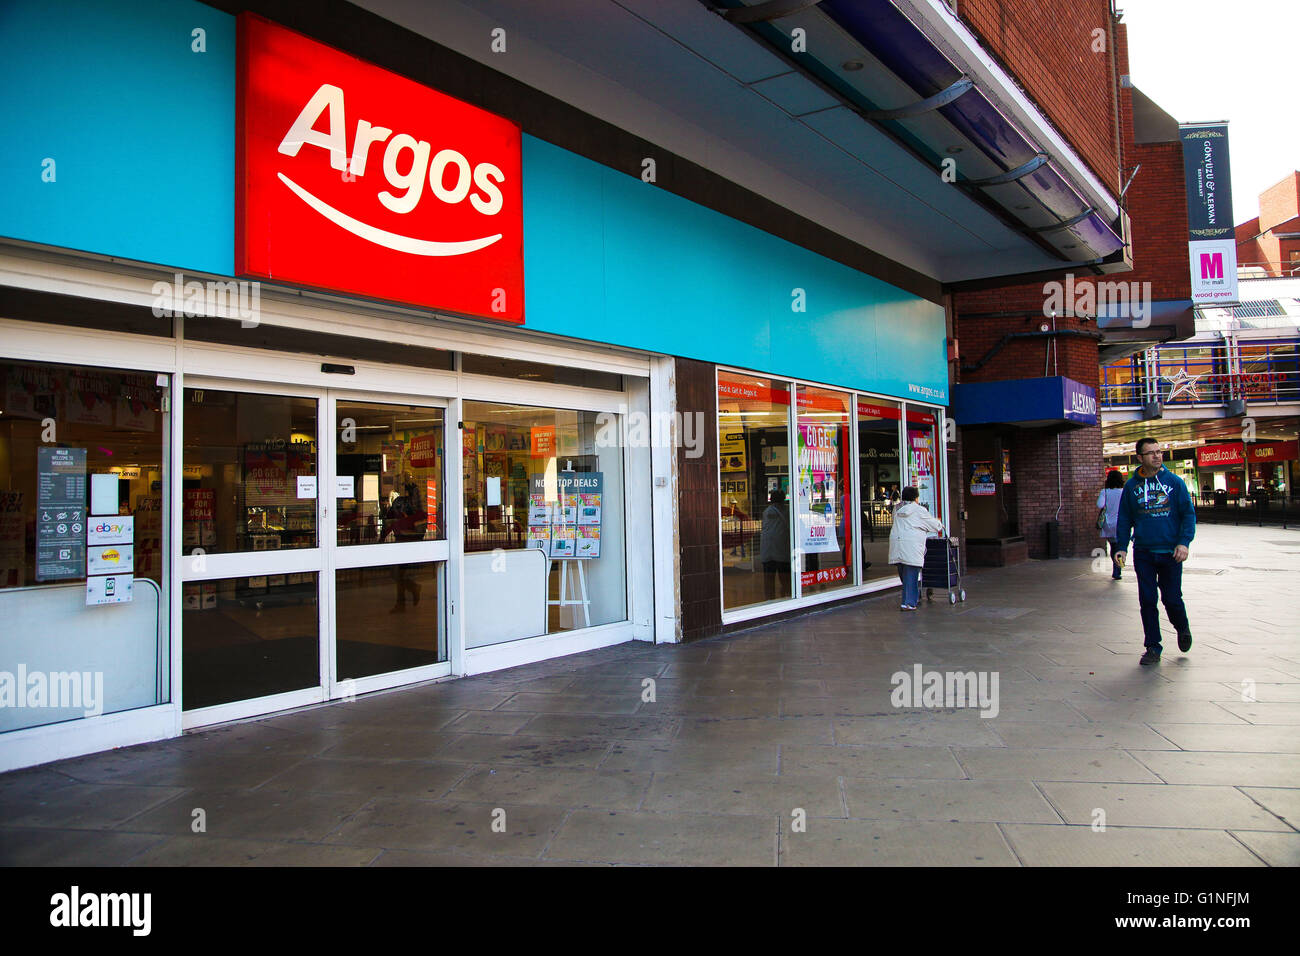 Exterior Shopfront Of An Argos Store In Wood Green Shopping